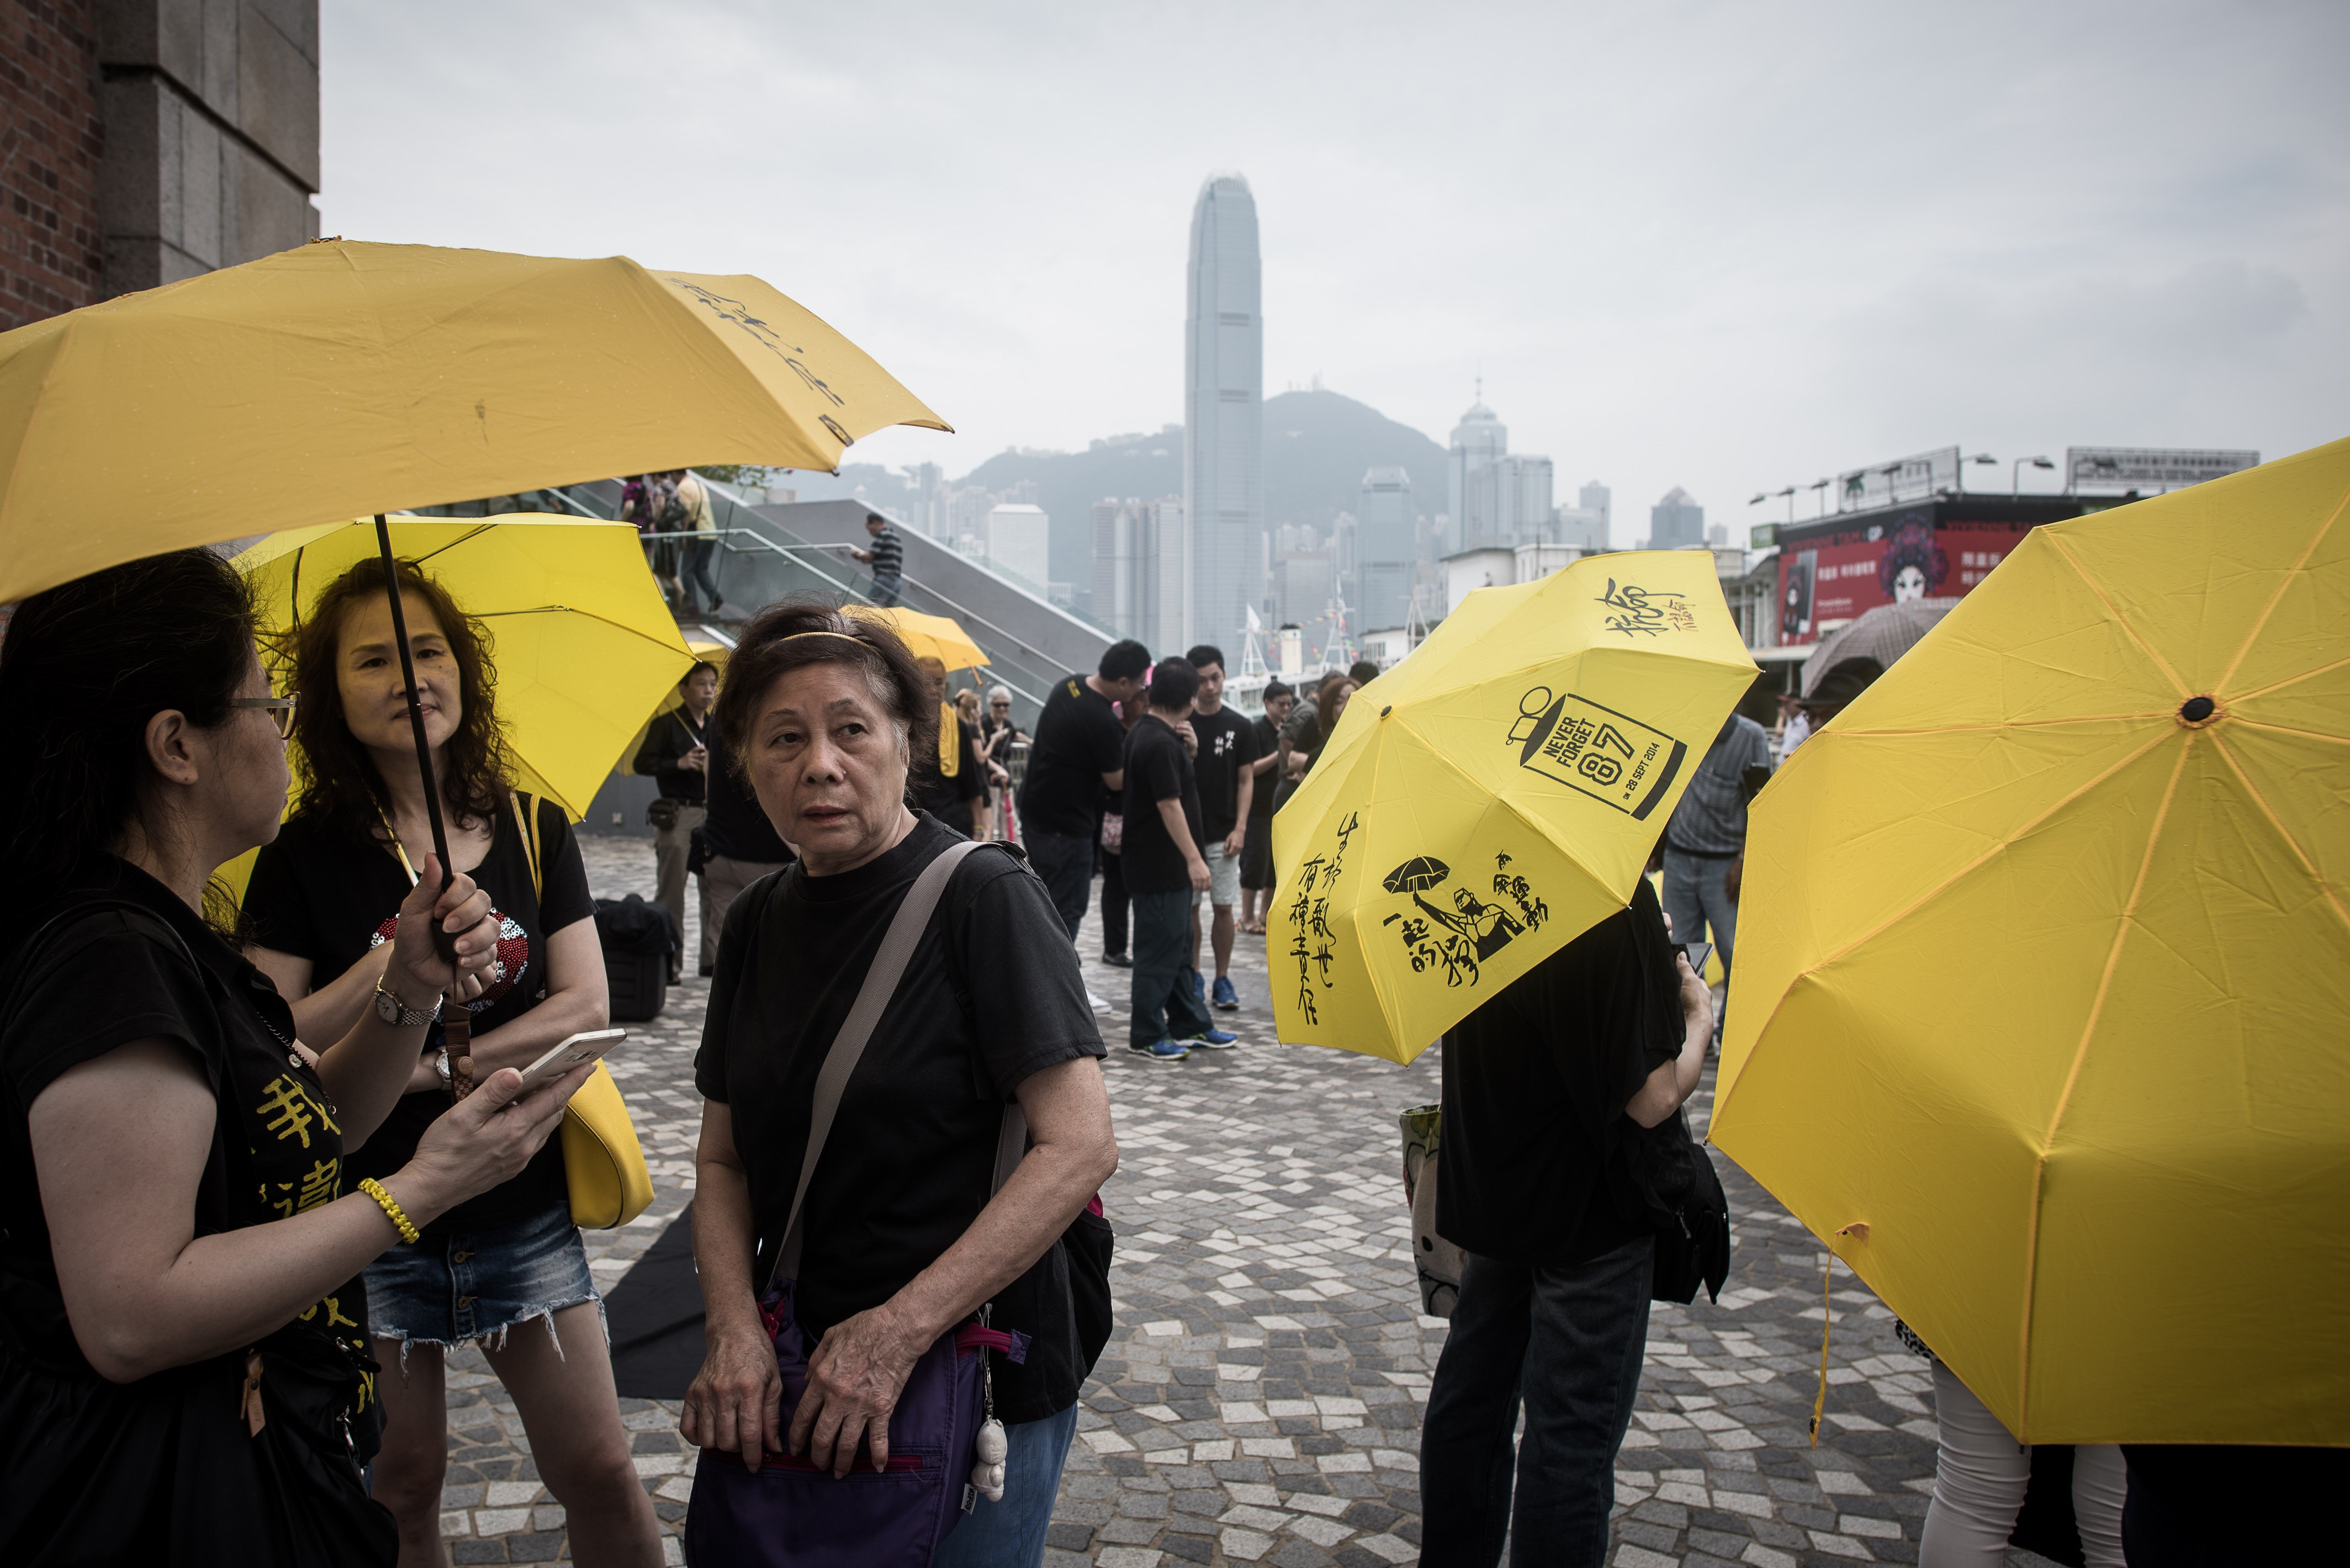 Pro-democracy demonstrators hold yellow umbrellas, a symbol of the pro-democracy movement in Hong Kong on Oct. 1, 2015, as they gather on China's National Day to denounce Beijing's influence over the territory